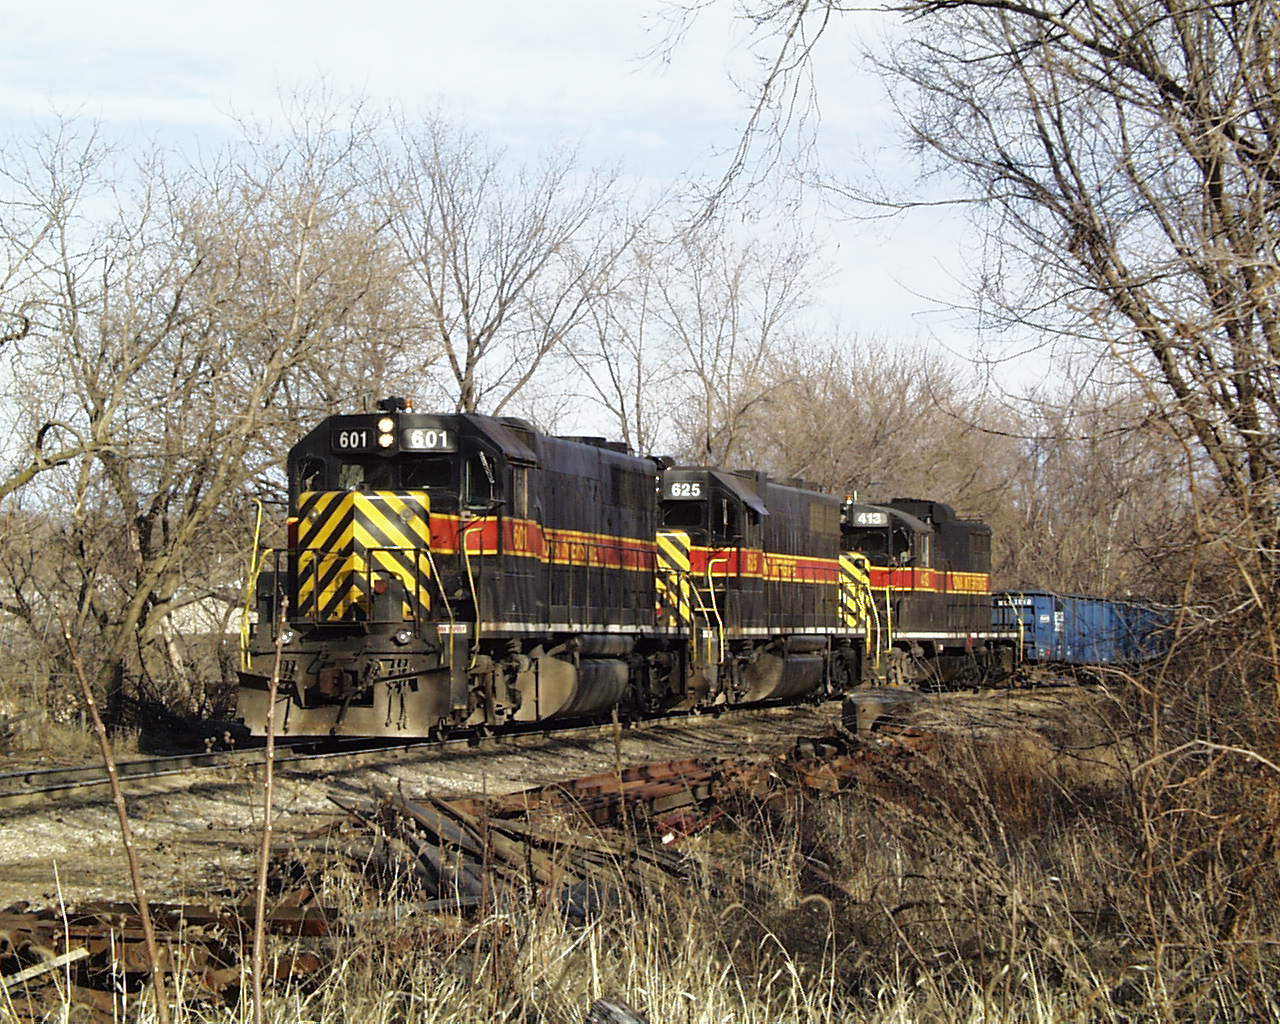 IAIS 601 at Iowa City, IA on 26-Feb-2000